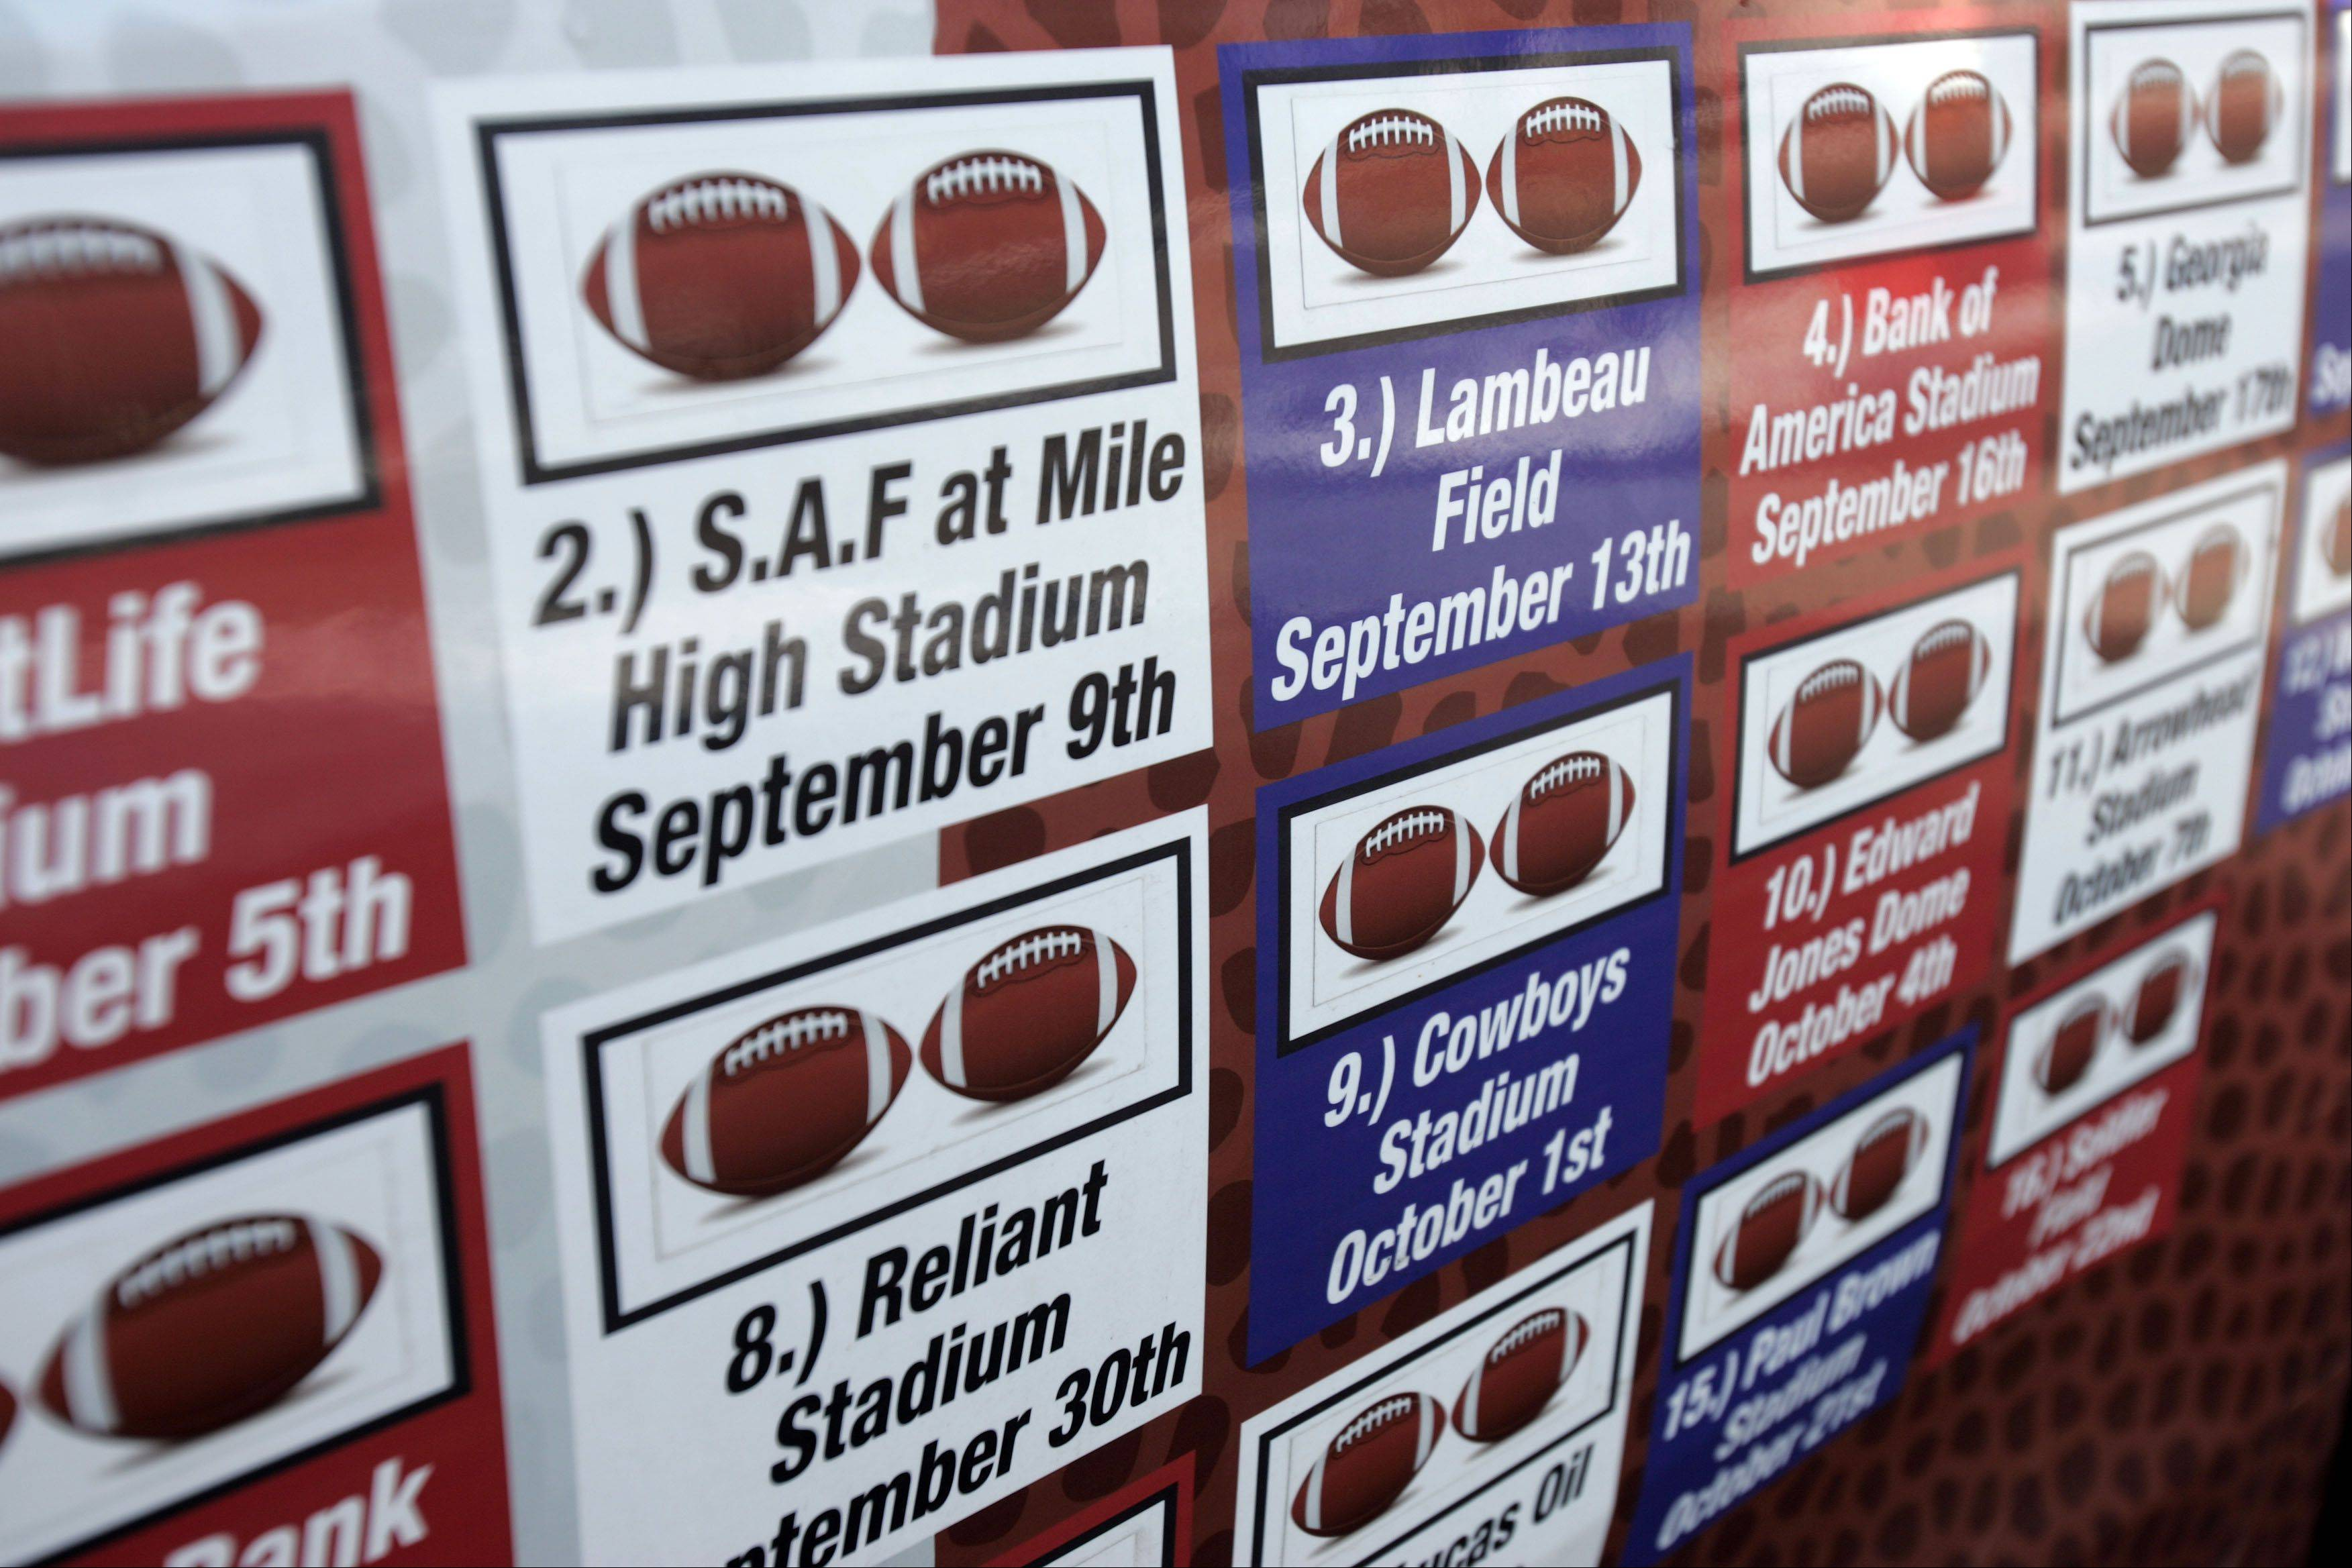 The Steichen van is adorned with the dates of the games that they brought wounded veterans with them on their mission to visit all 32 NFL stadiums in 15 weeks.